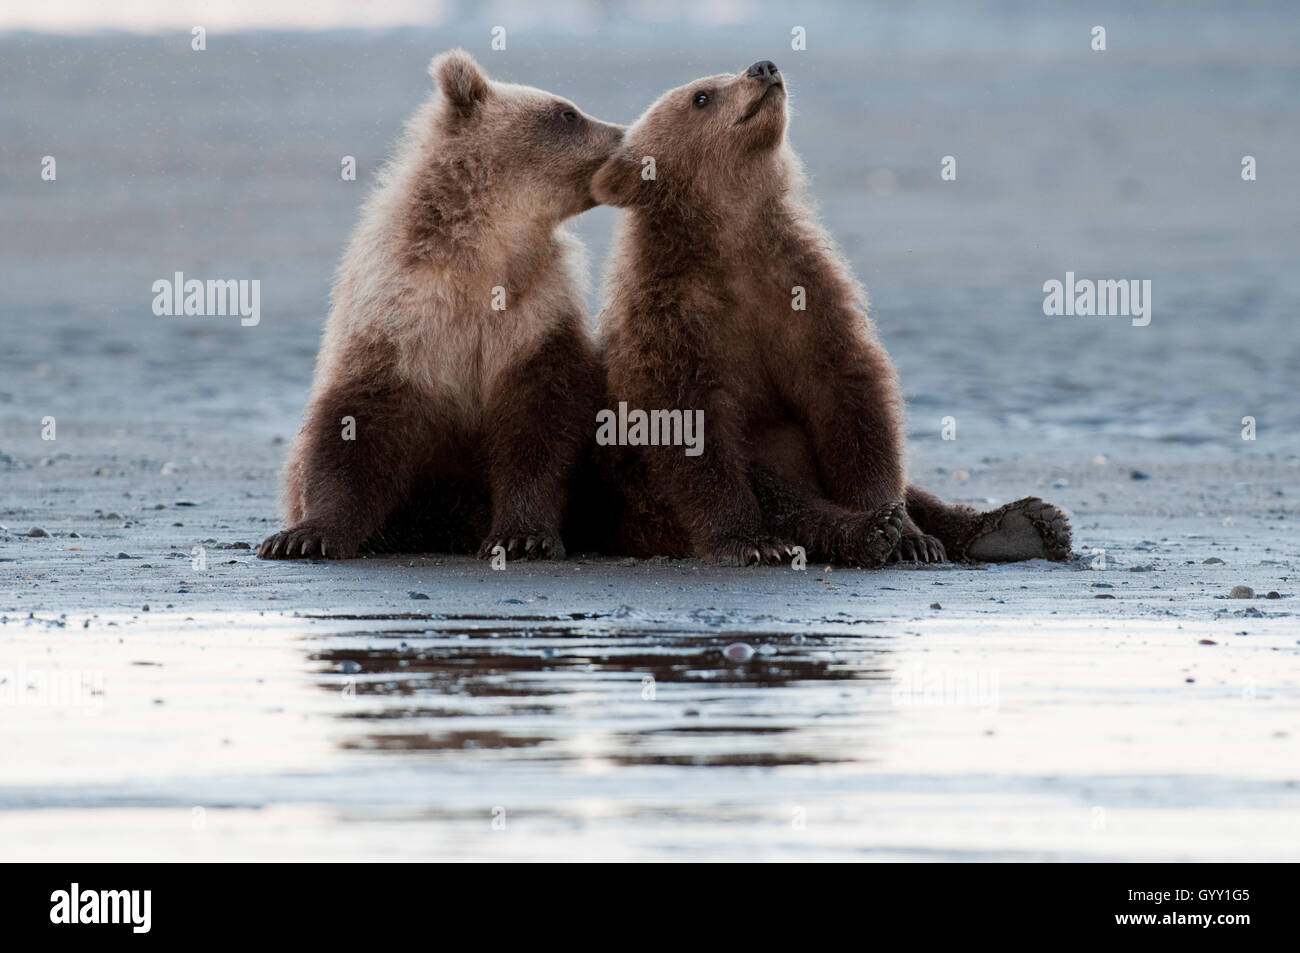 Petits ours brun (ursus arctos) sur platin dans lake clark national park, alaska Photo Stock